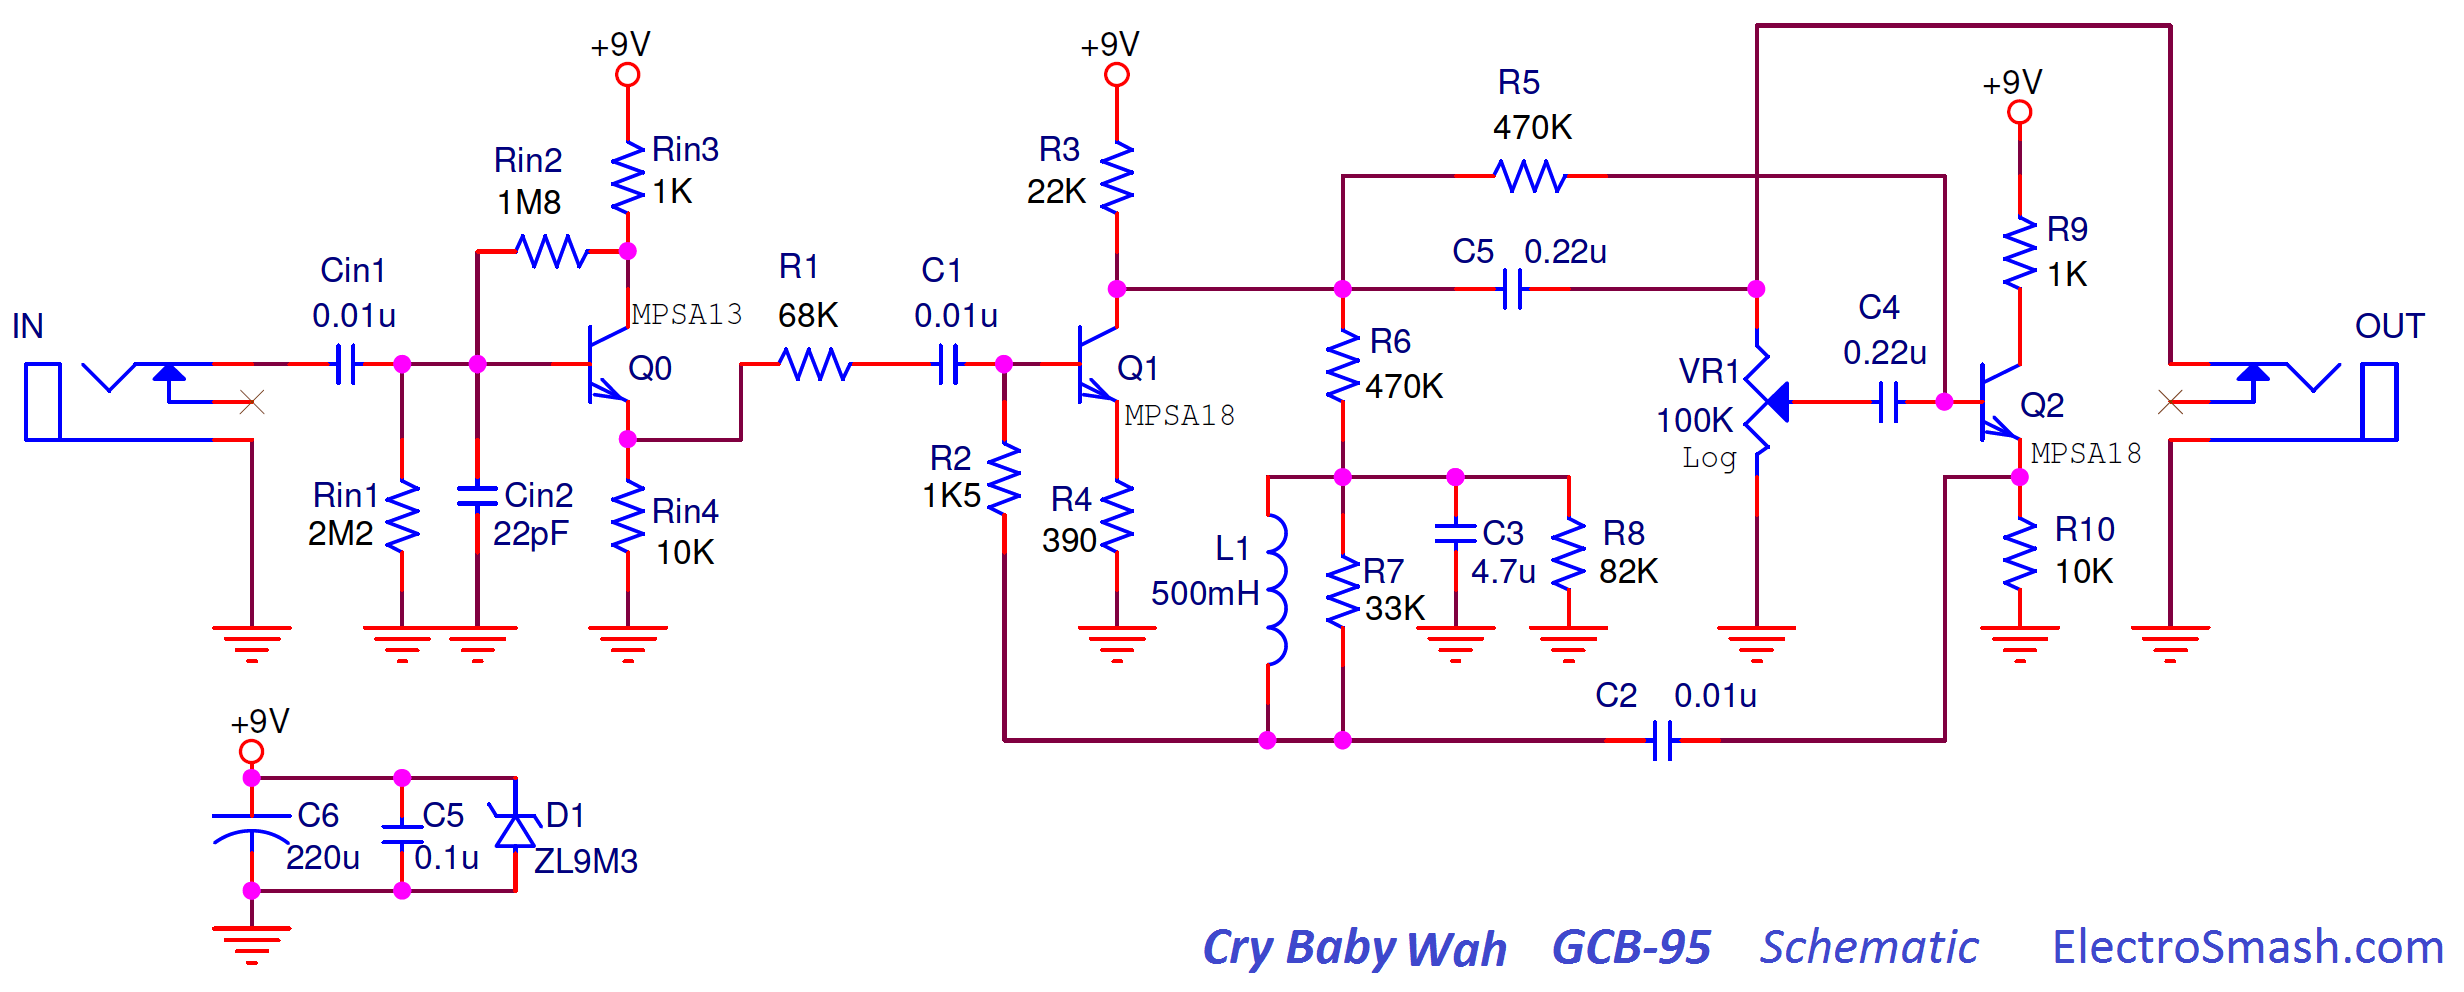 electrosmash dunlop crybaby gcb 95 circuit analysis throttle wiring-diagram wah pedal wiring diagram #3